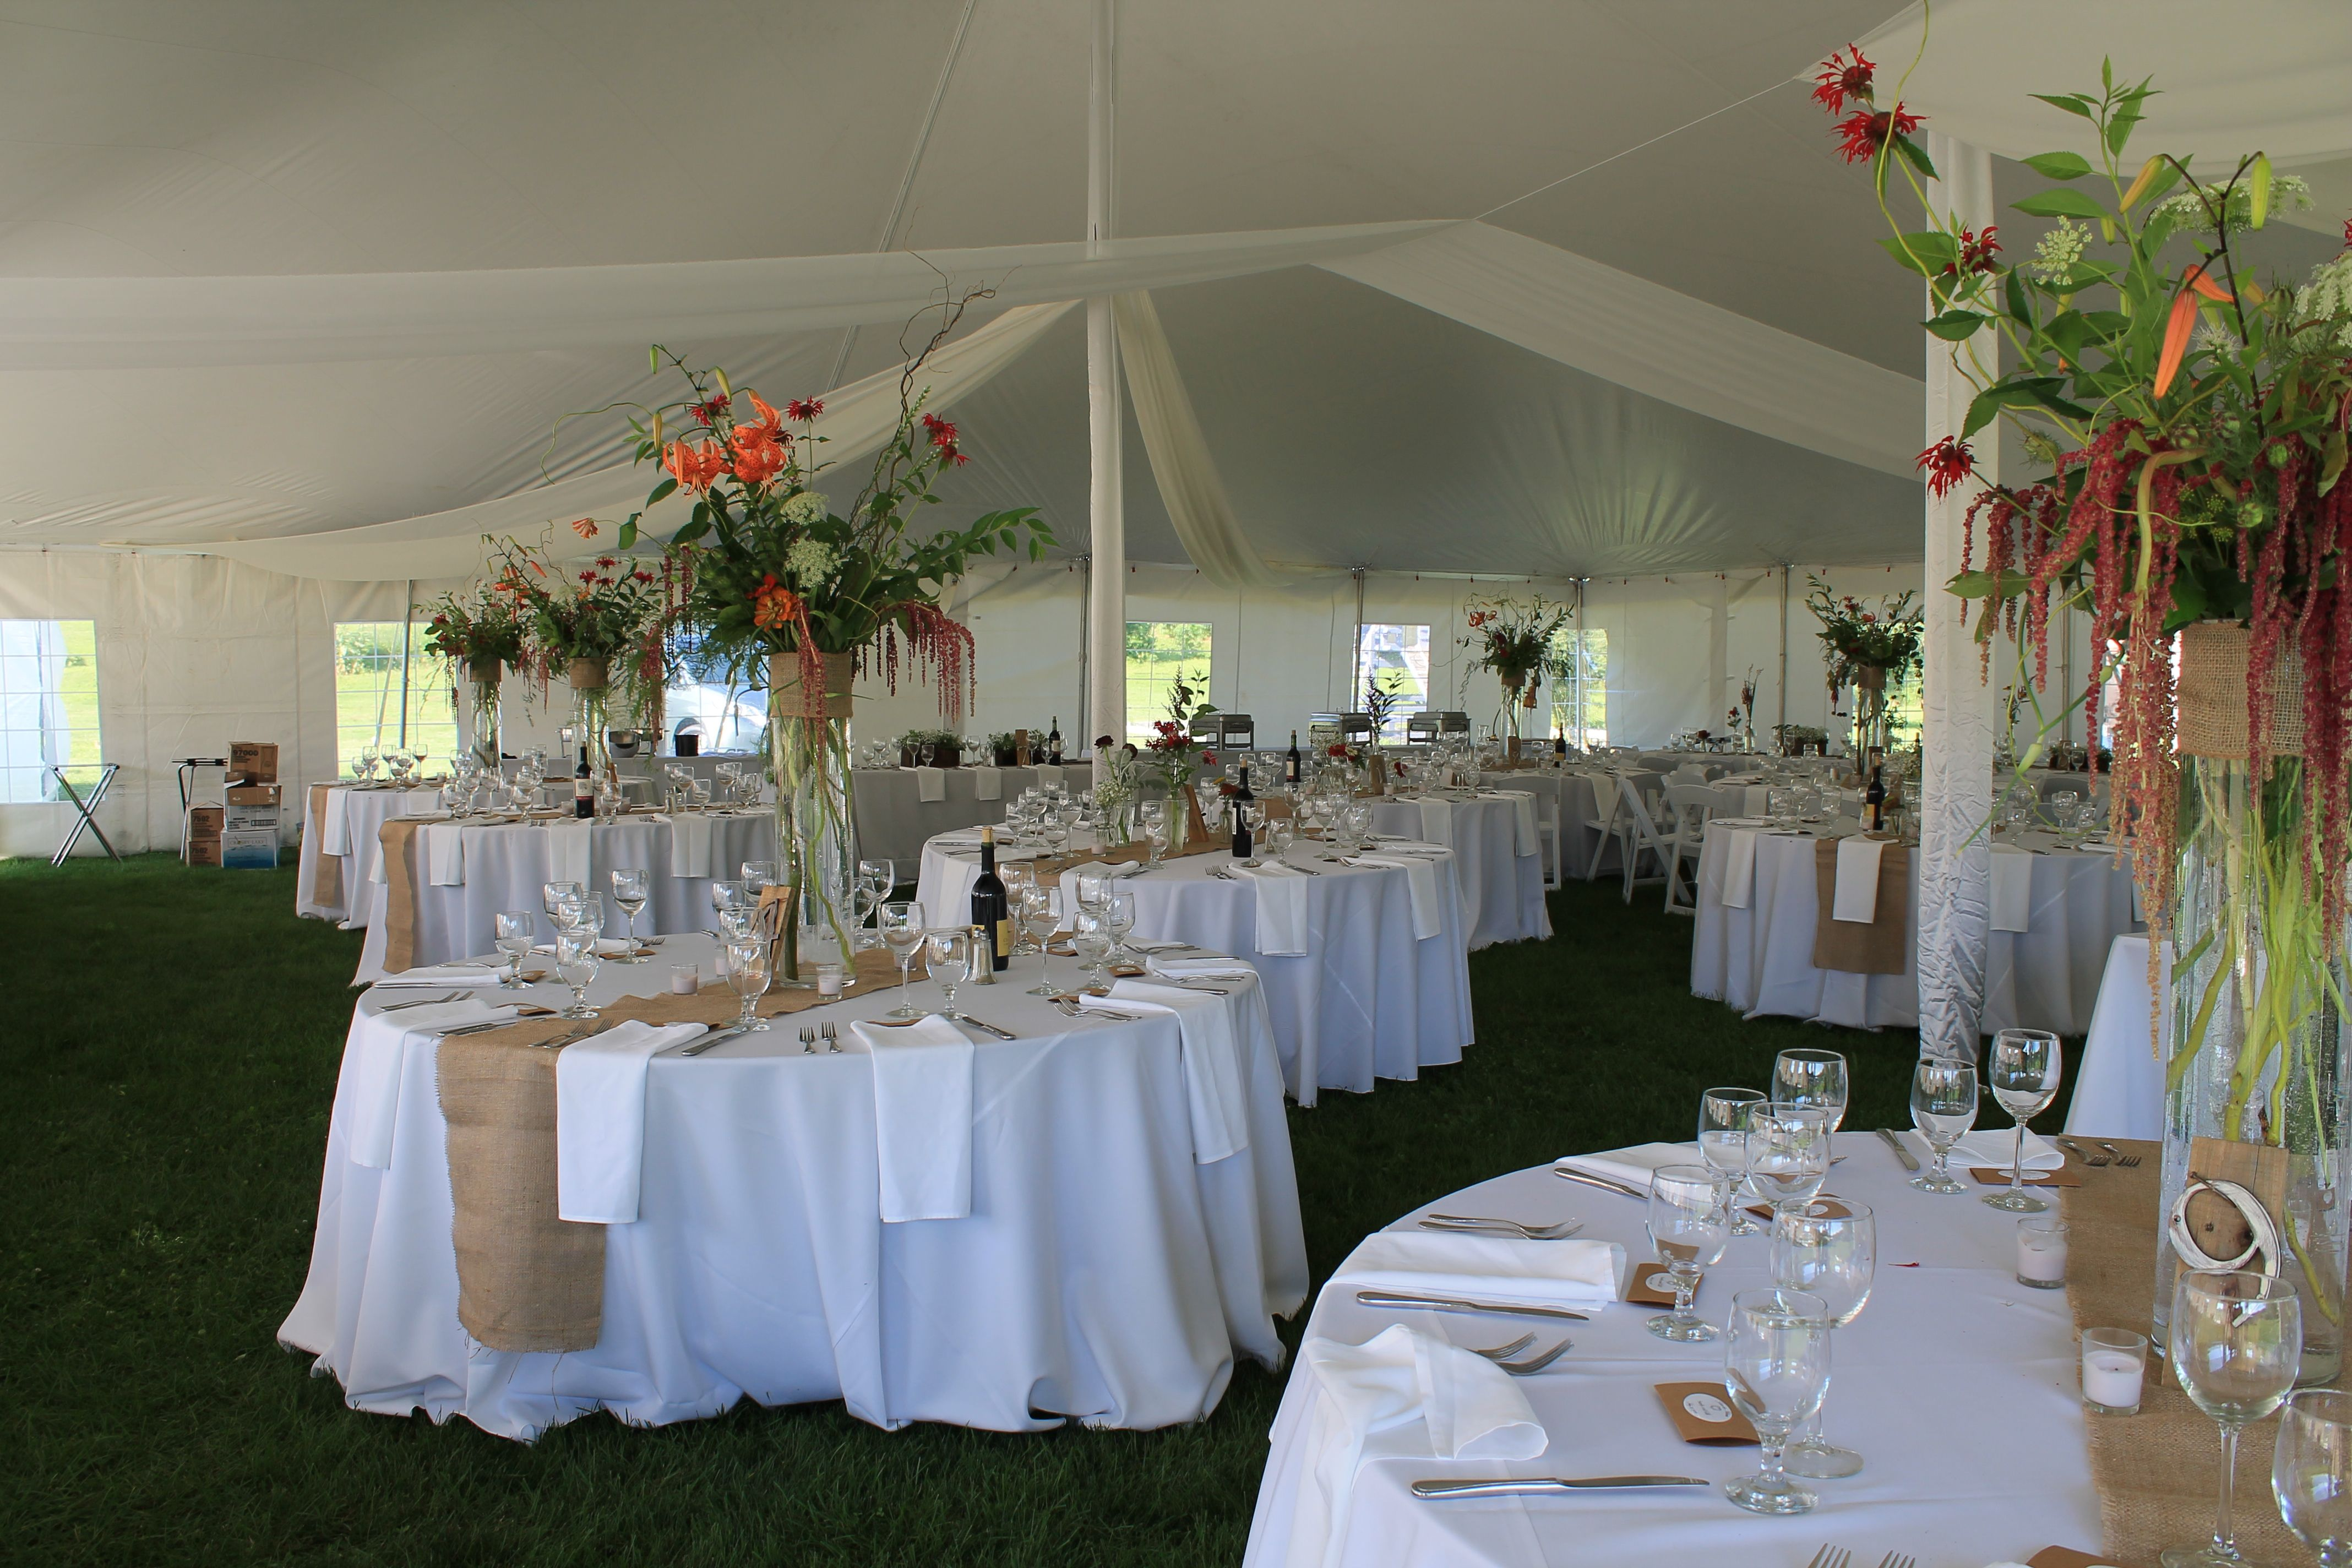 Gifford and Sarah 07.26.14 stunning tent set for dinner